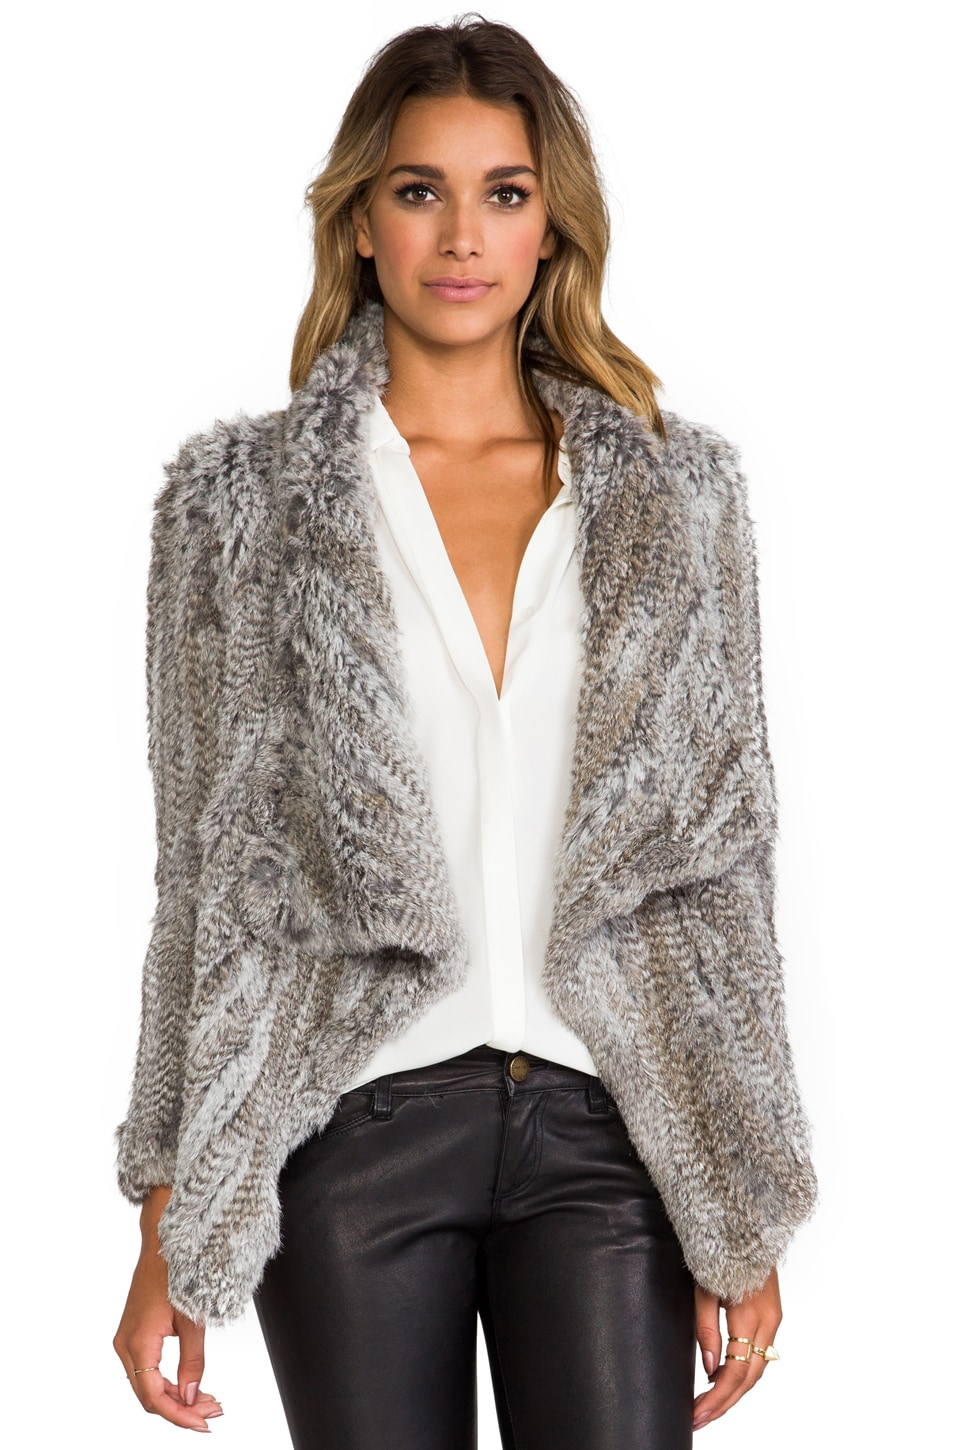 Elizabeth and James Cropped Elijah Jacket in Salt and Pepper